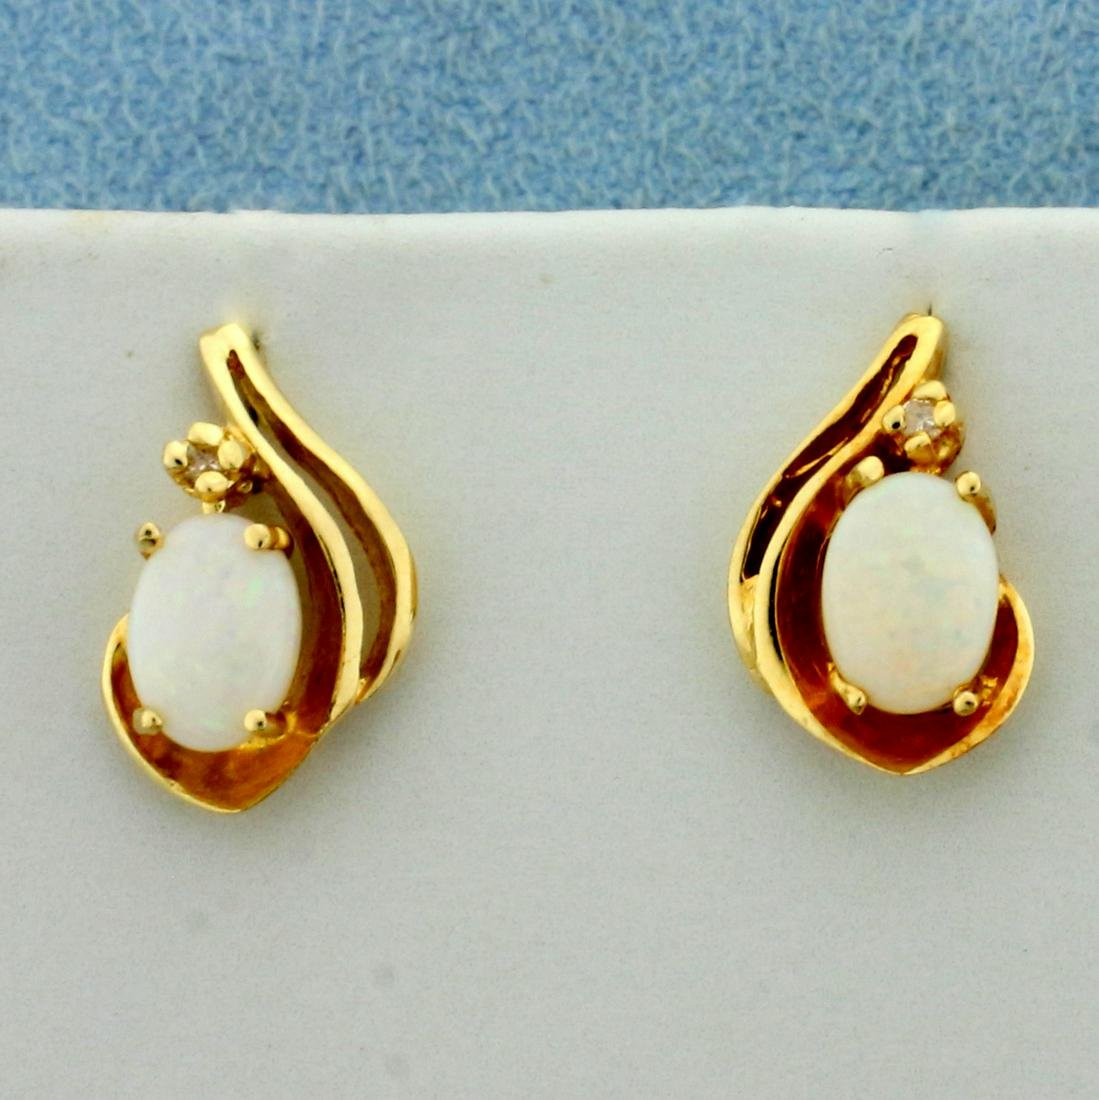 Natural Opal and Diamond Earrings in 14K Yellow Gold